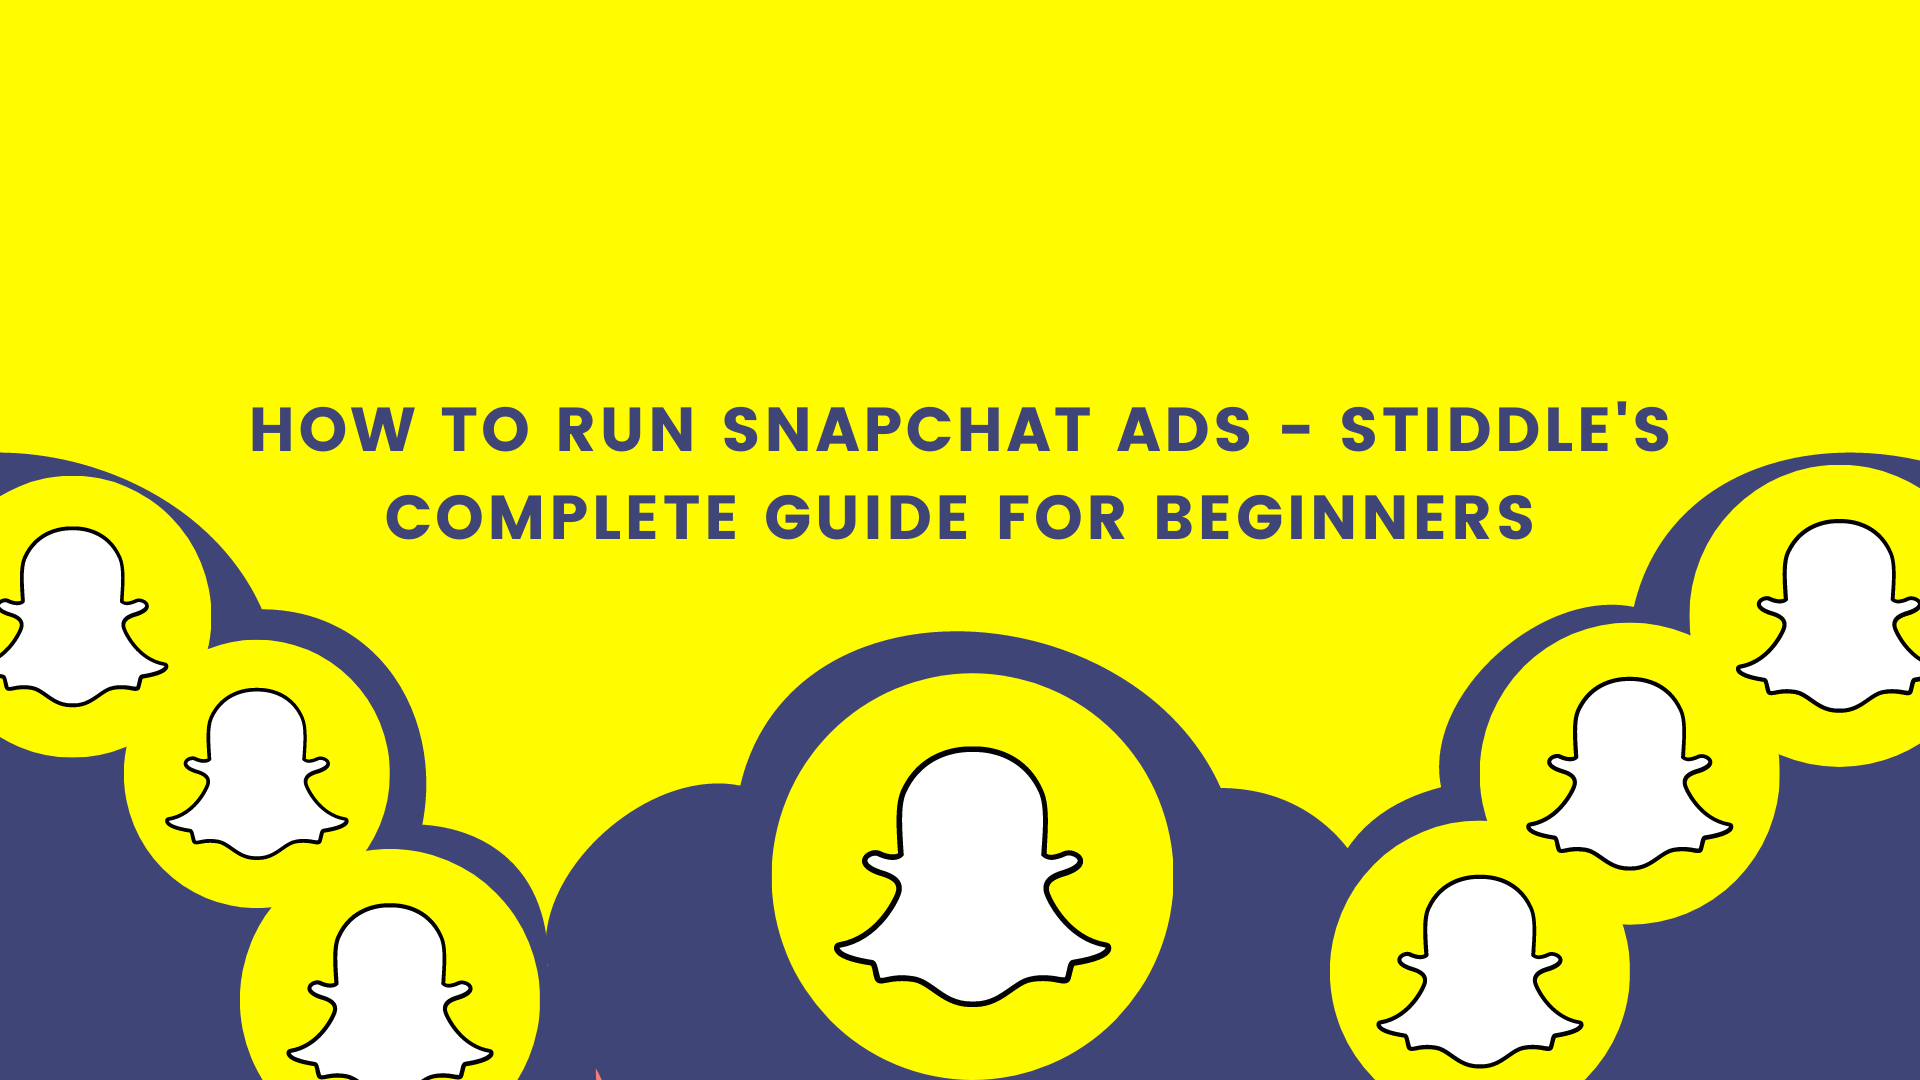 How to Run Snapchat Ads - A Complete Guide for Beginners